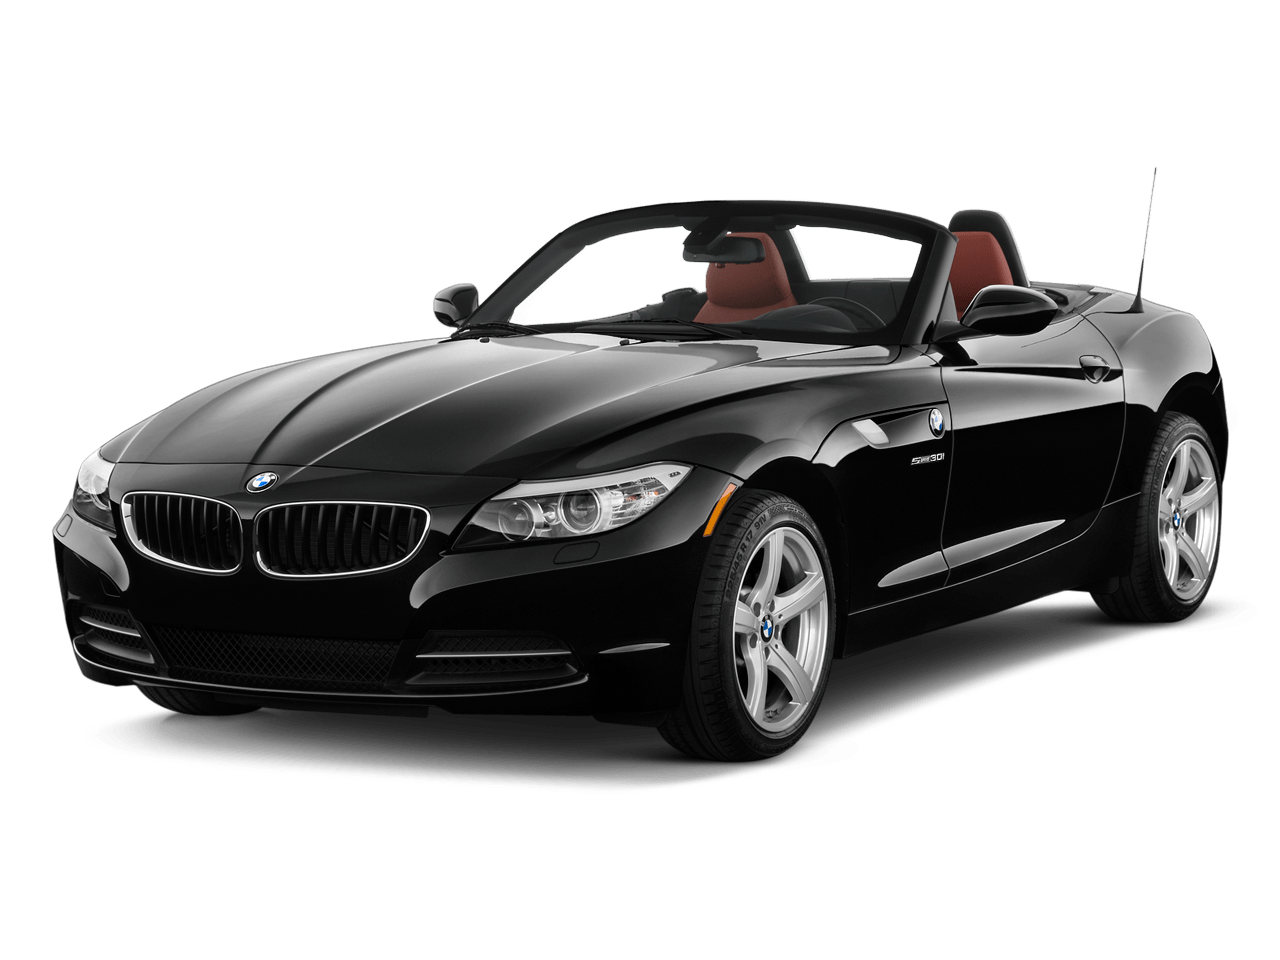 2009 Bmw Z4 Reviews And Rating  Motor Trend